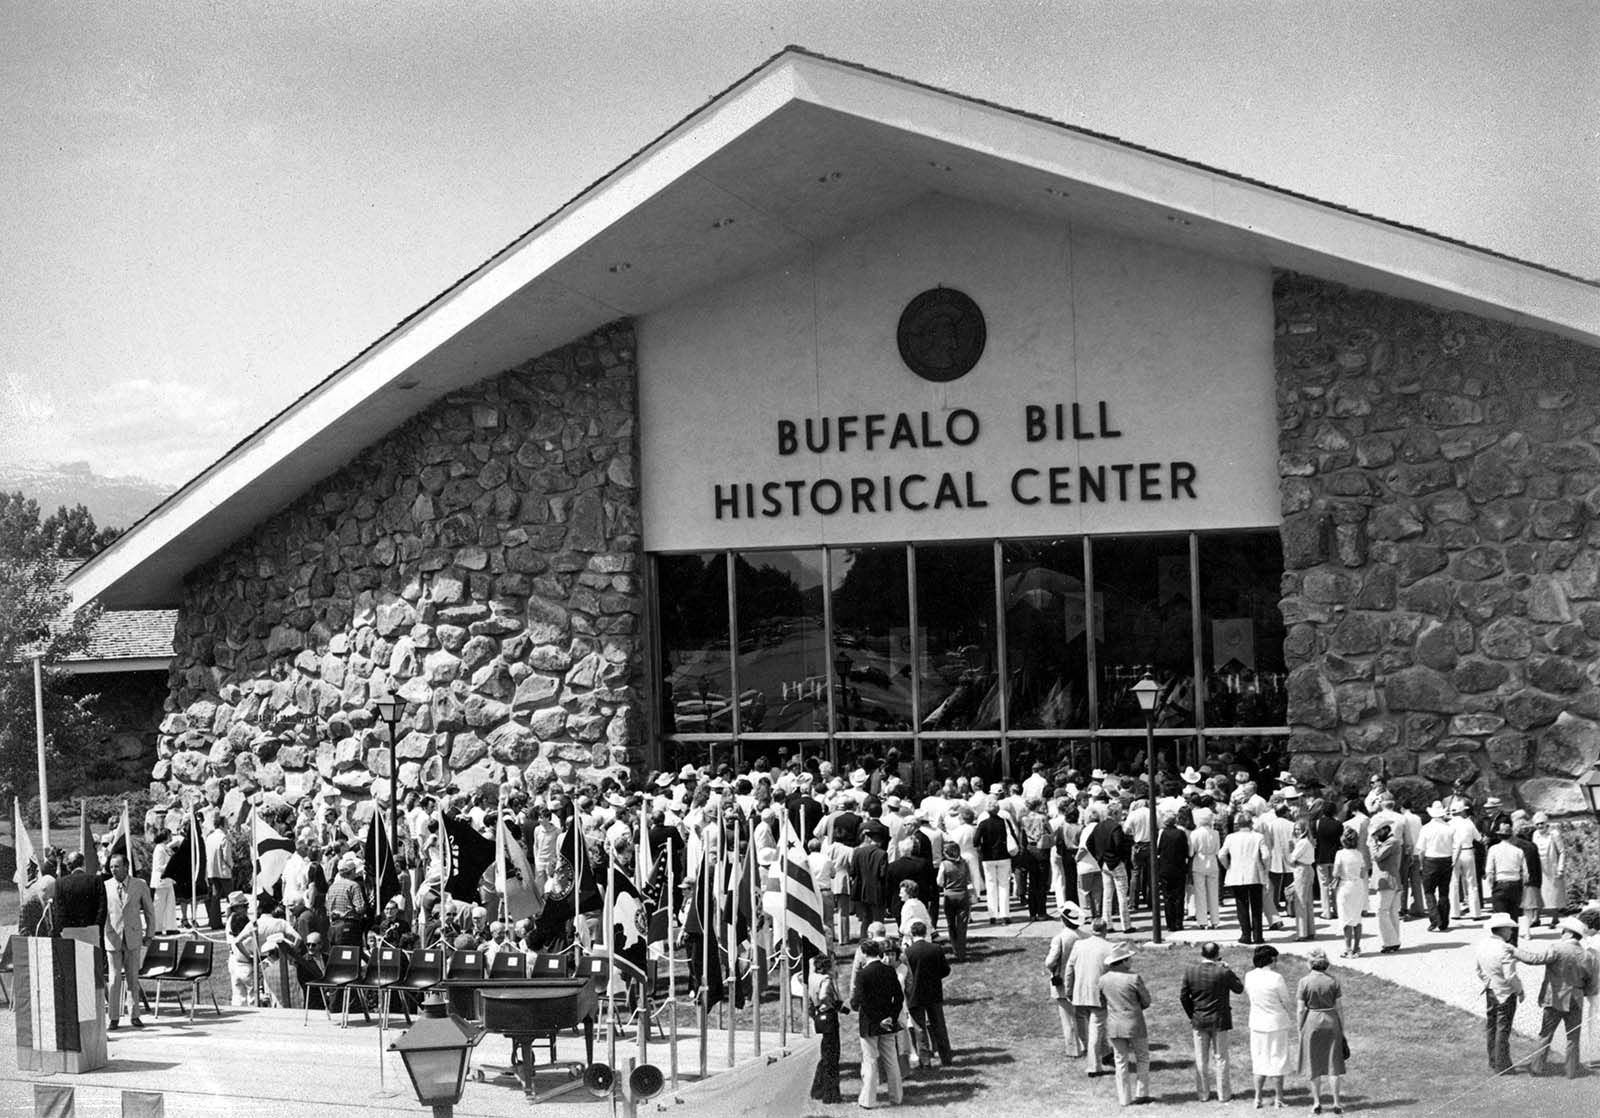 Crowds gather to view the Winchester Collection, July 4, 1976, Cody, Wyoming. P.20.4643